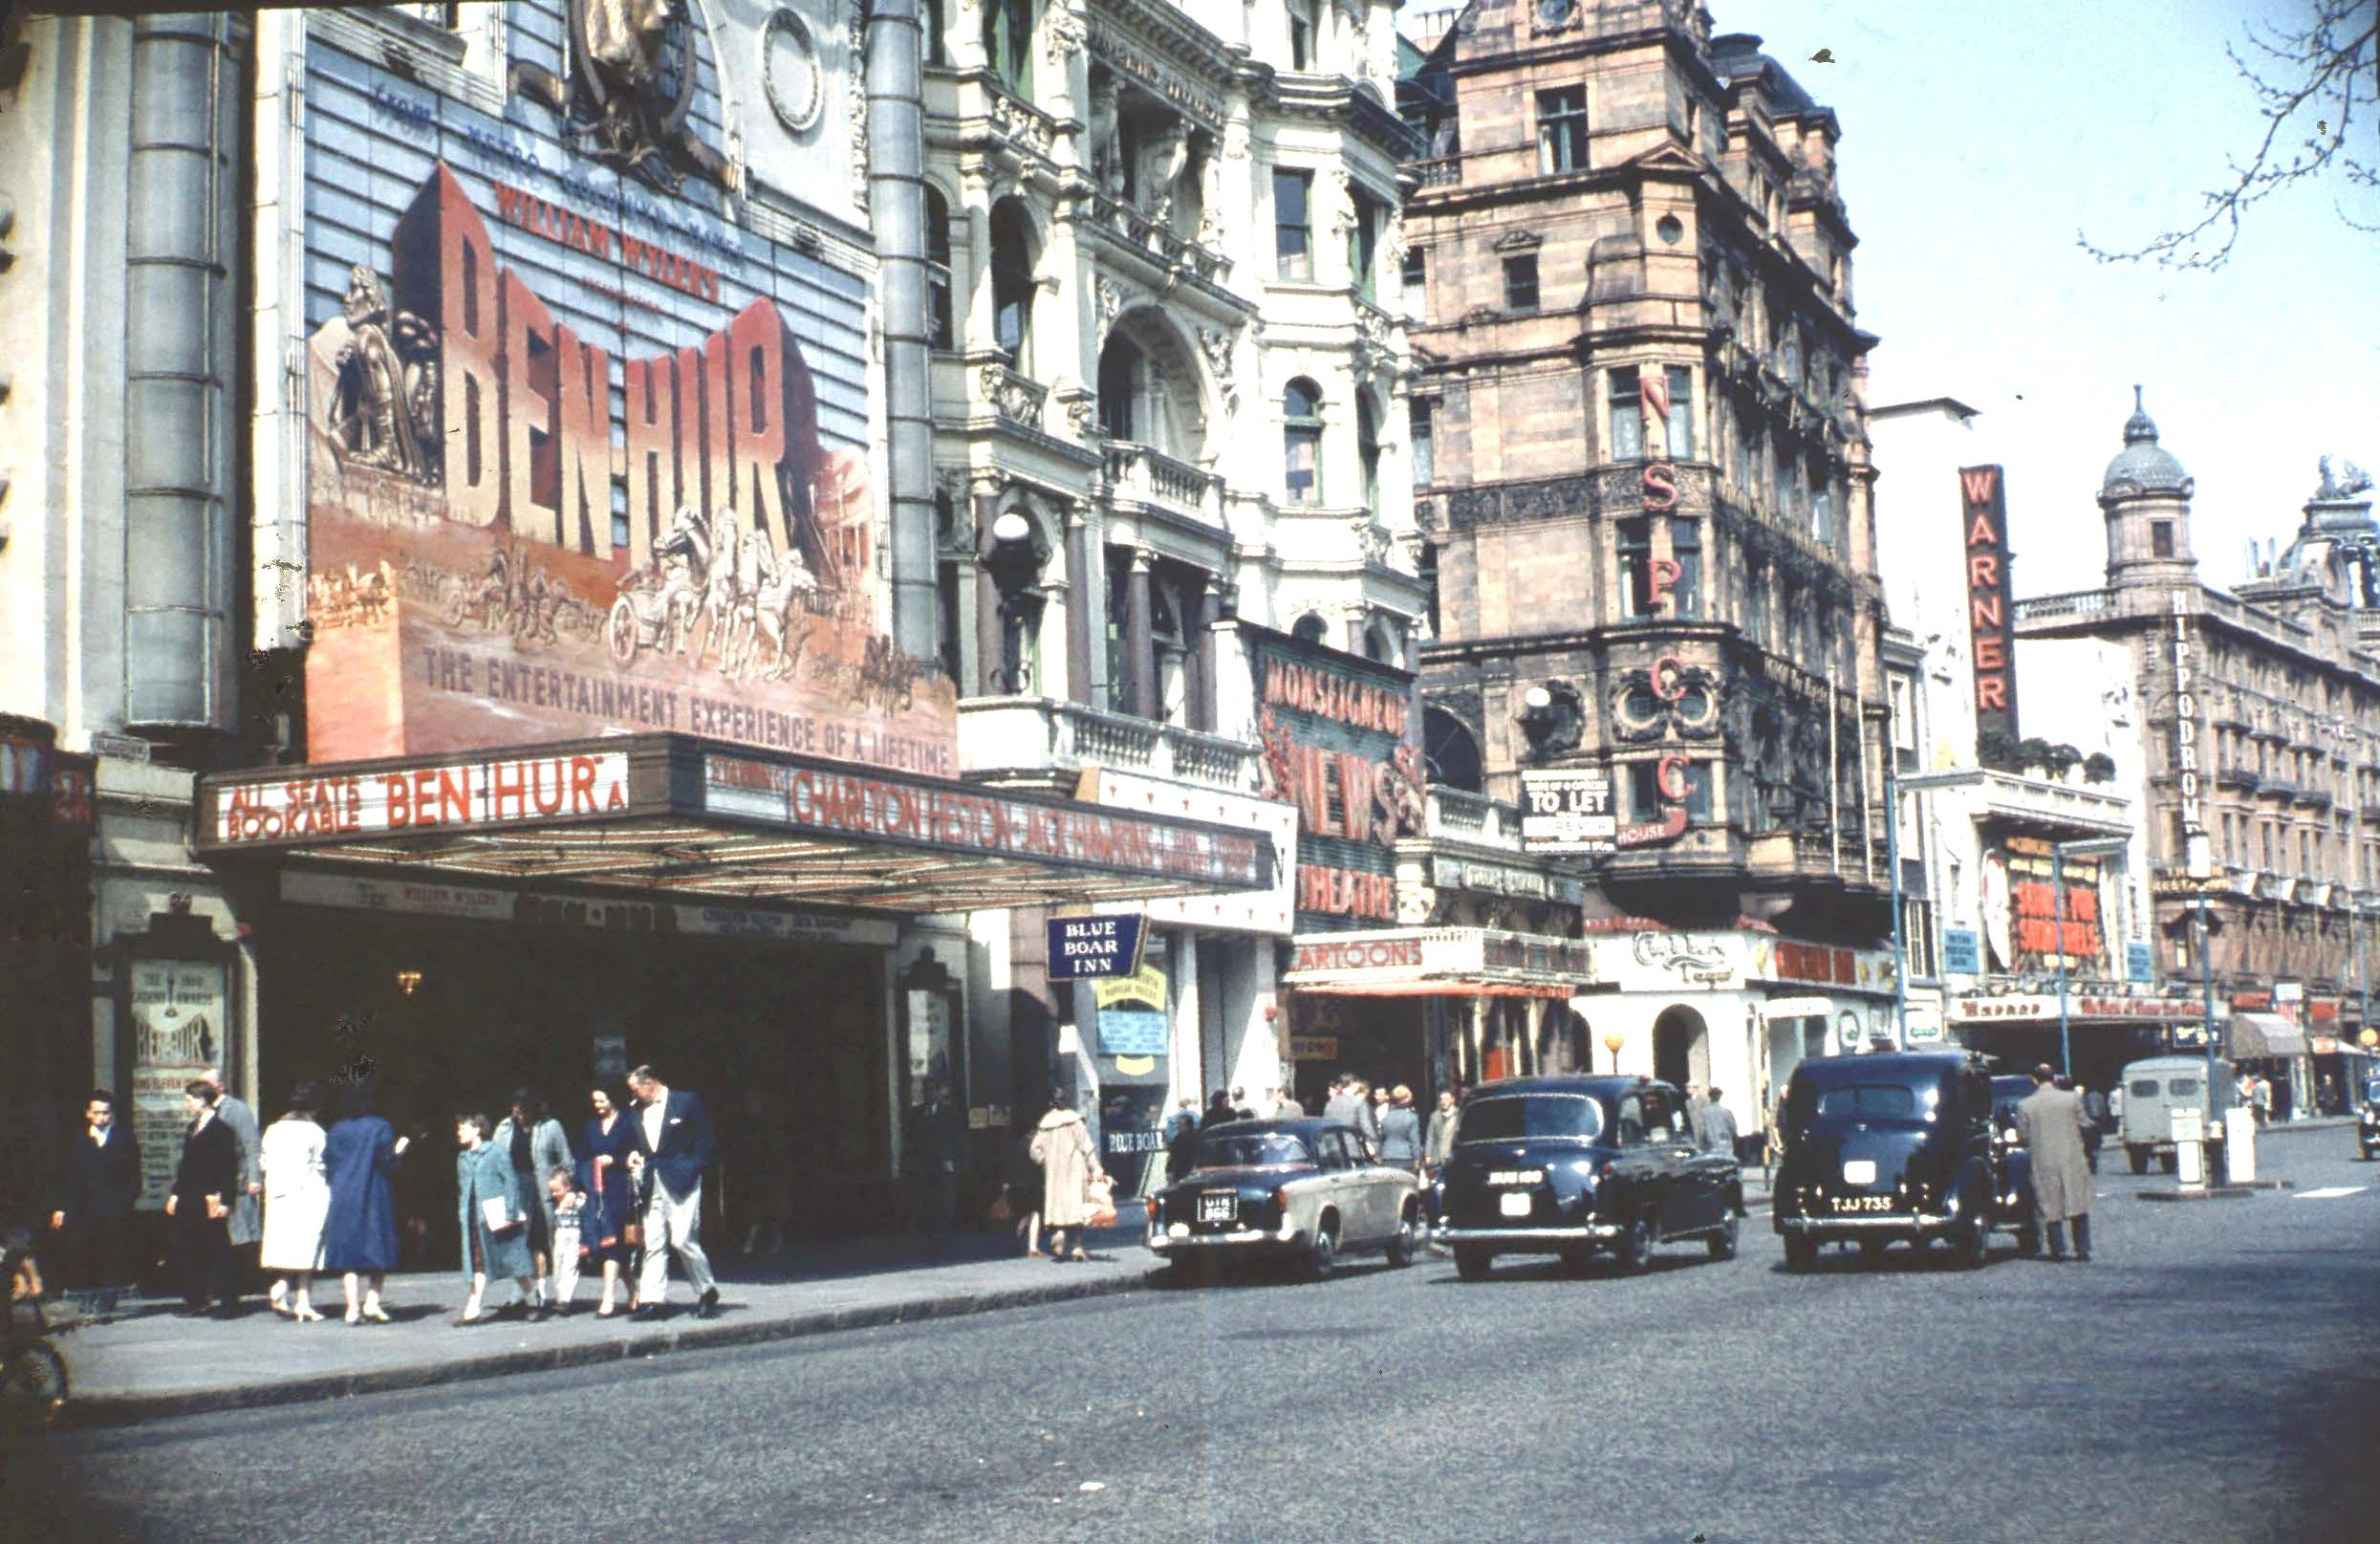 Leicester Square 1960s Historical London Old London Soho London